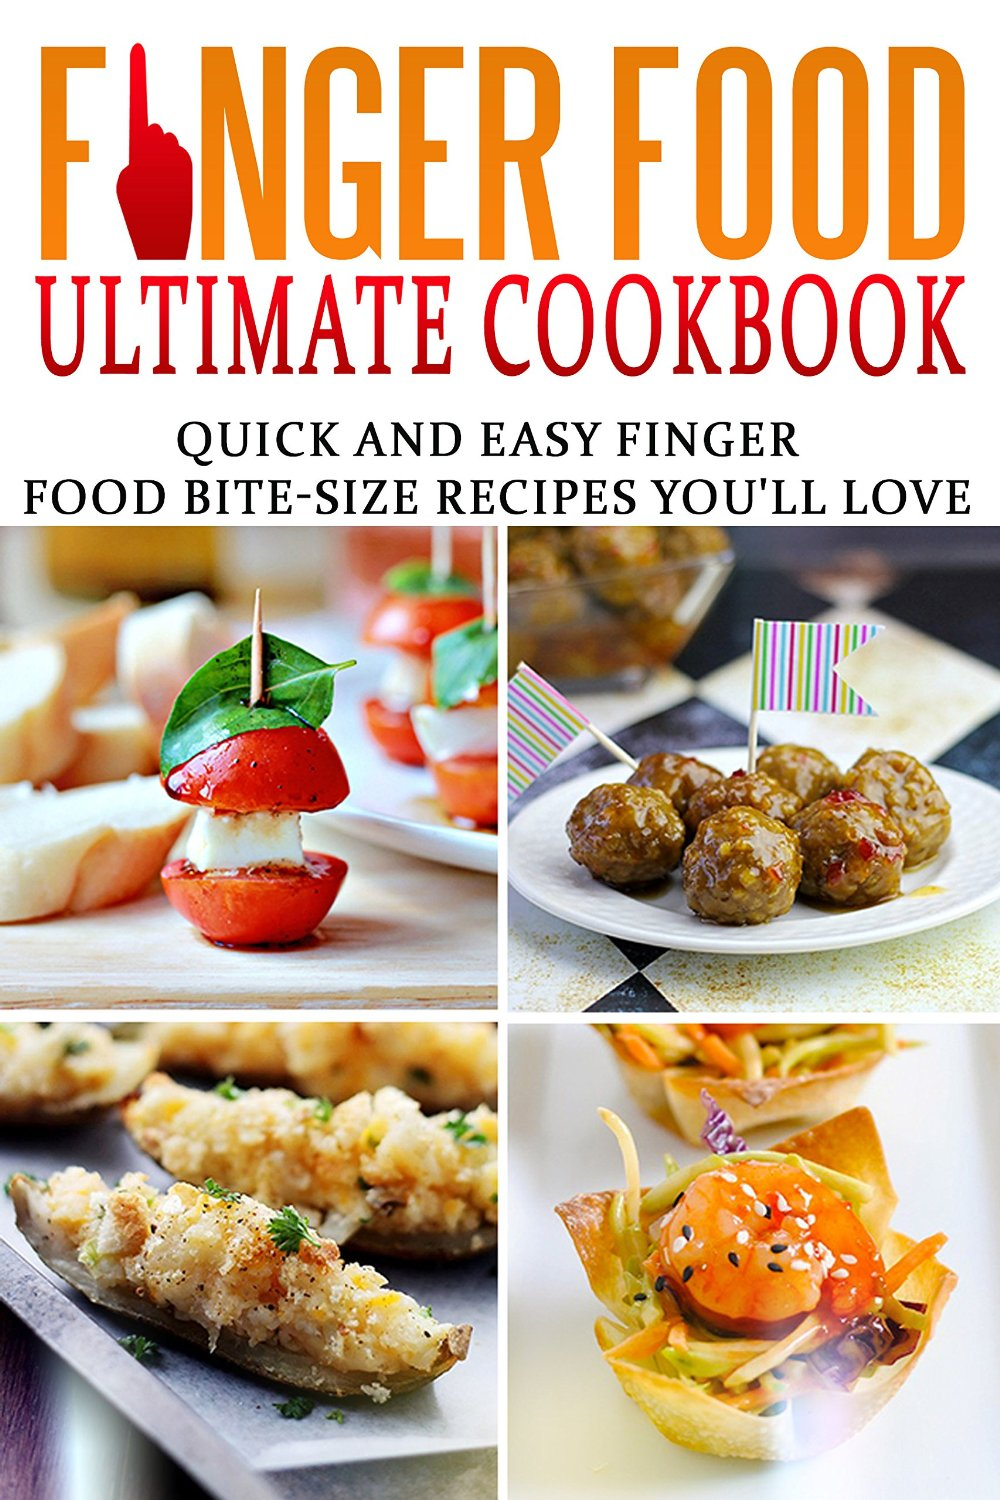 Finger Food Ultimate Cookbook: Quick And Easy Finger Food Bite-Size Recipes You'll Love free download